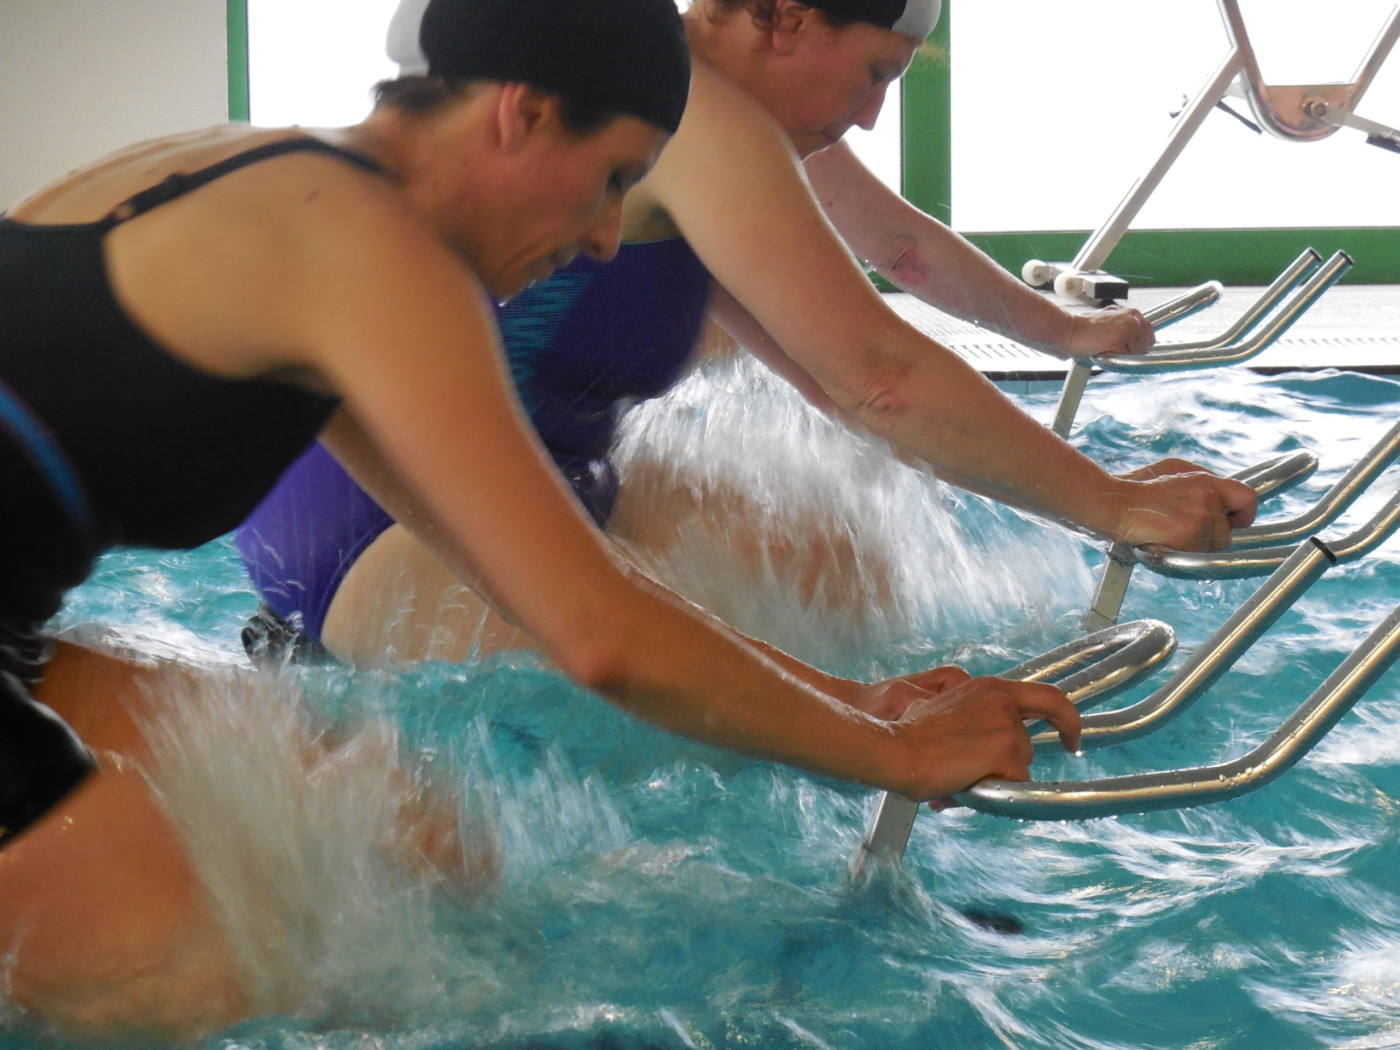 Hydrobike in piscina a Trento | Prosport a.s.d. Trento